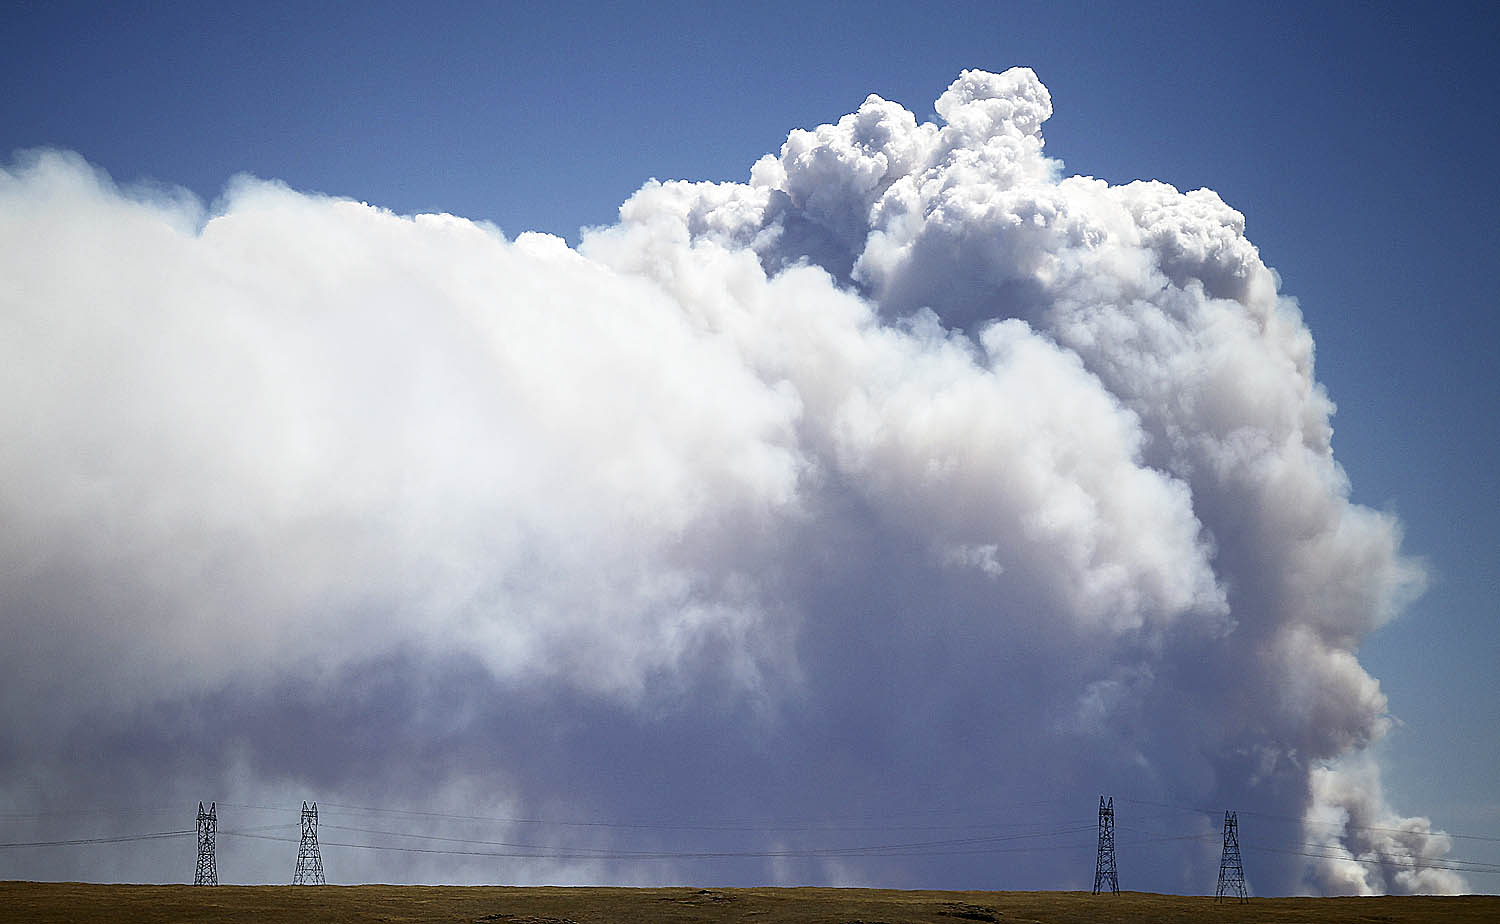 essay on pollution for class 6th Global warming, (in class essay) the cause is a thickening layer of carbon dioxide pollution, mostly from power plants and cars that traps heat in the atmosphere.